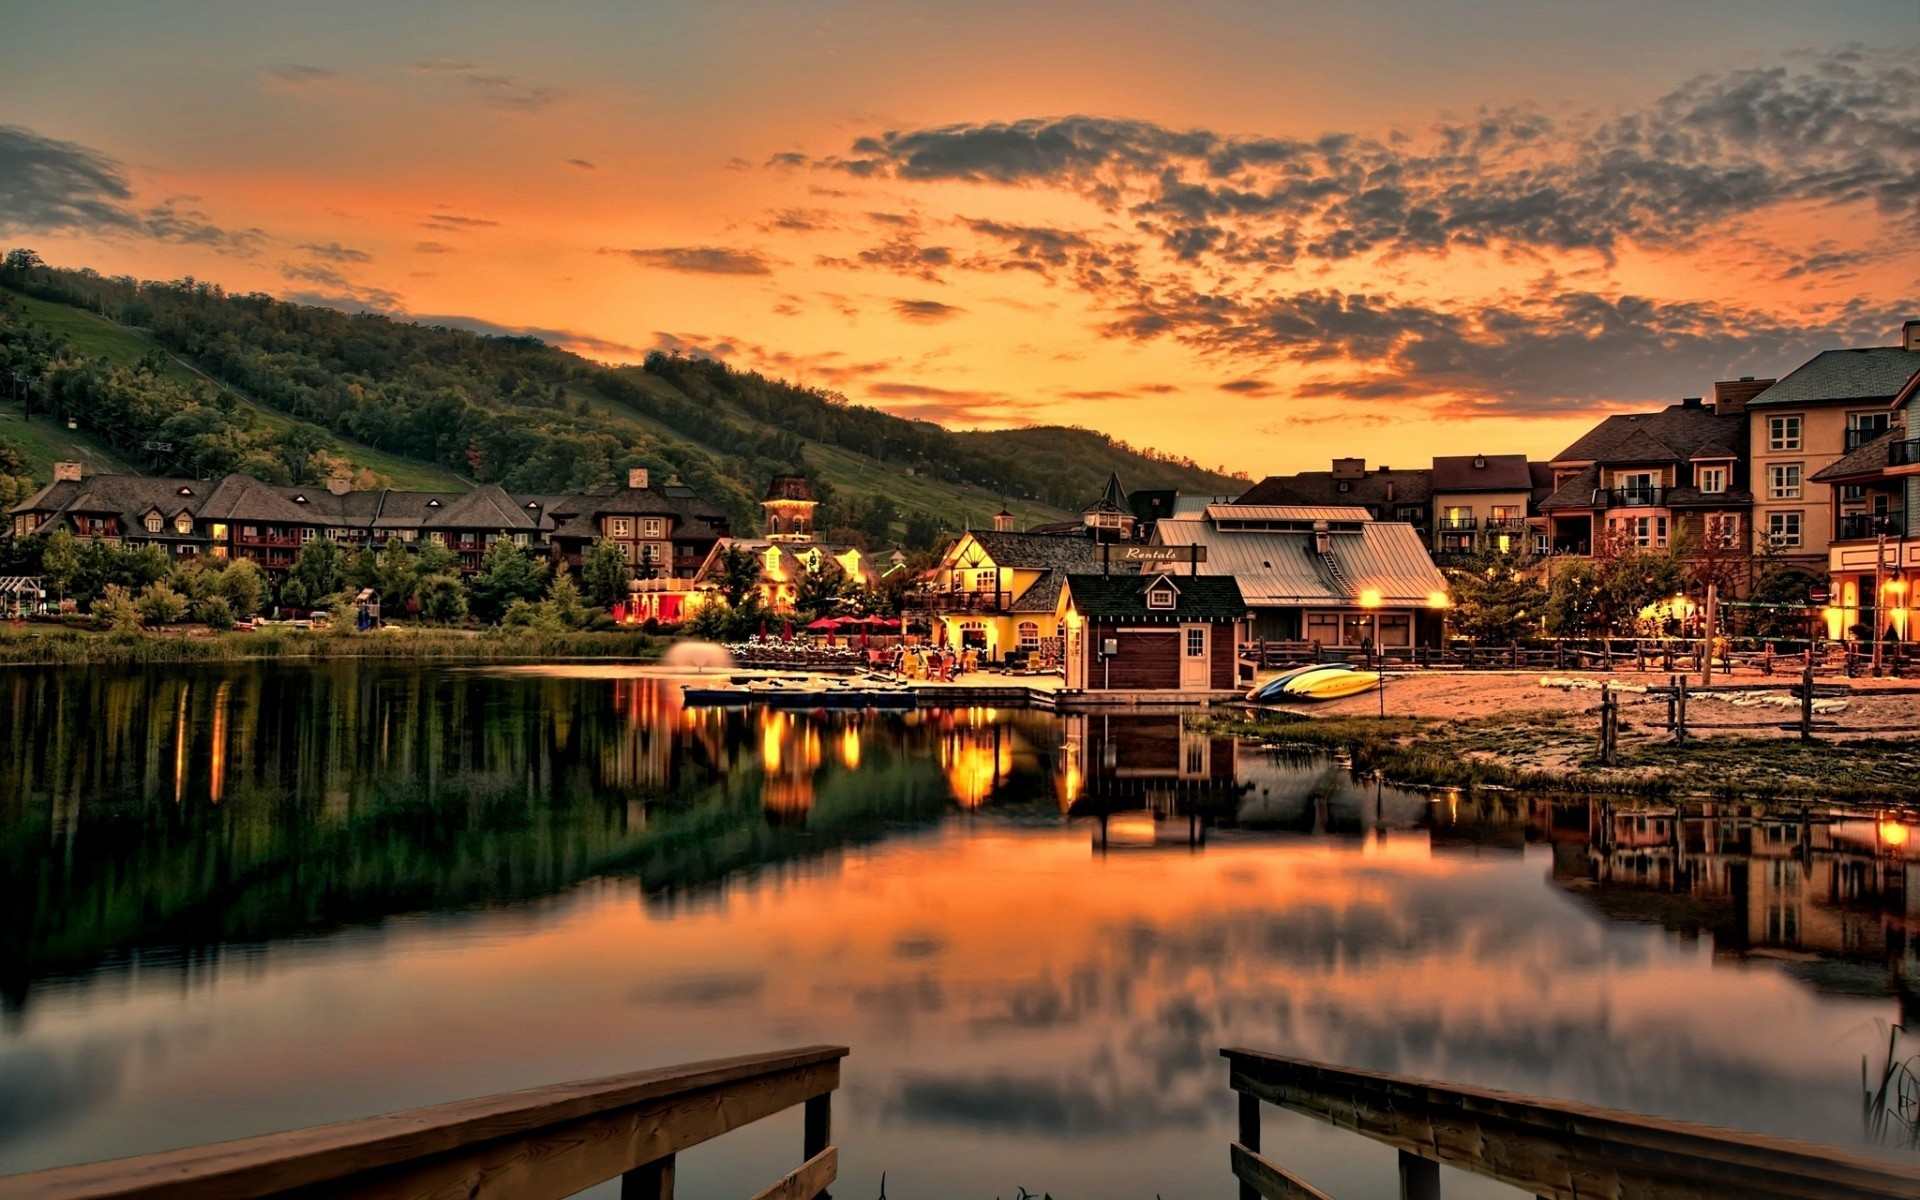 landscapes water reflection travel sunset lake city river architecture dawn sea boat evening sky outdoors town building house dusk seashore landscape clouds